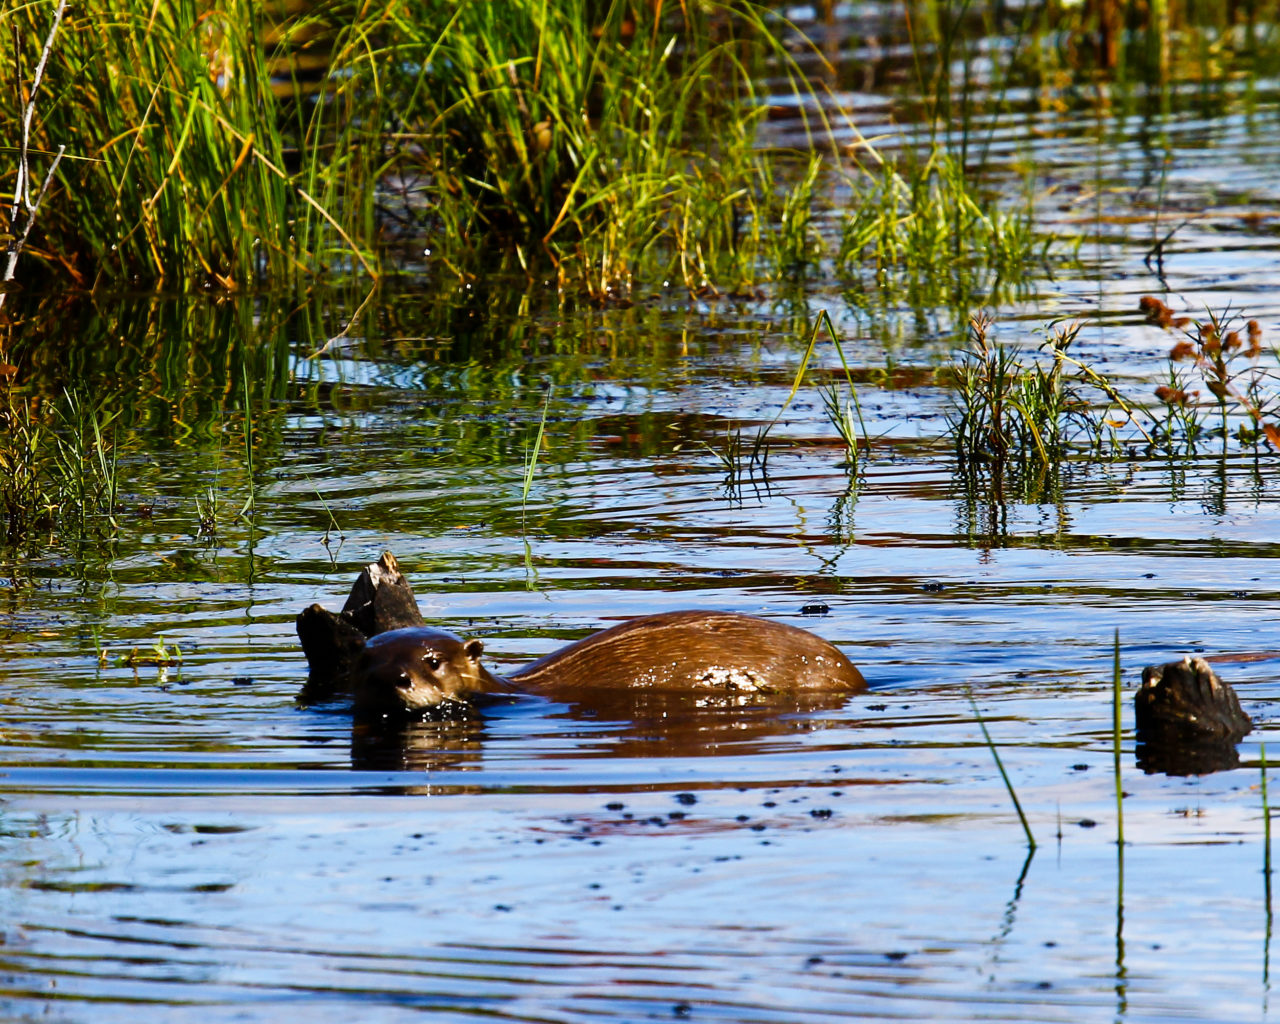 River Otter photo by David Small